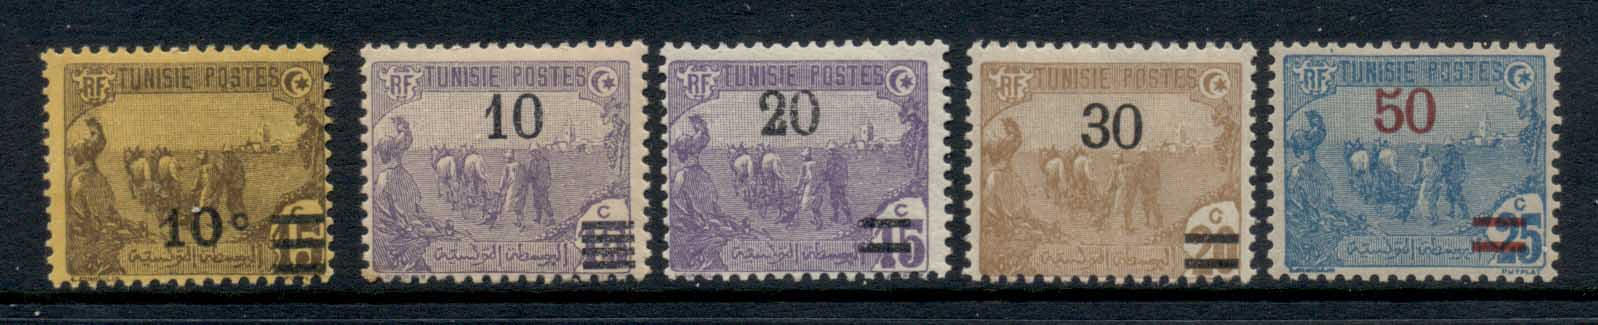 Tunisia 1911-28 Surcharges Asst MLH